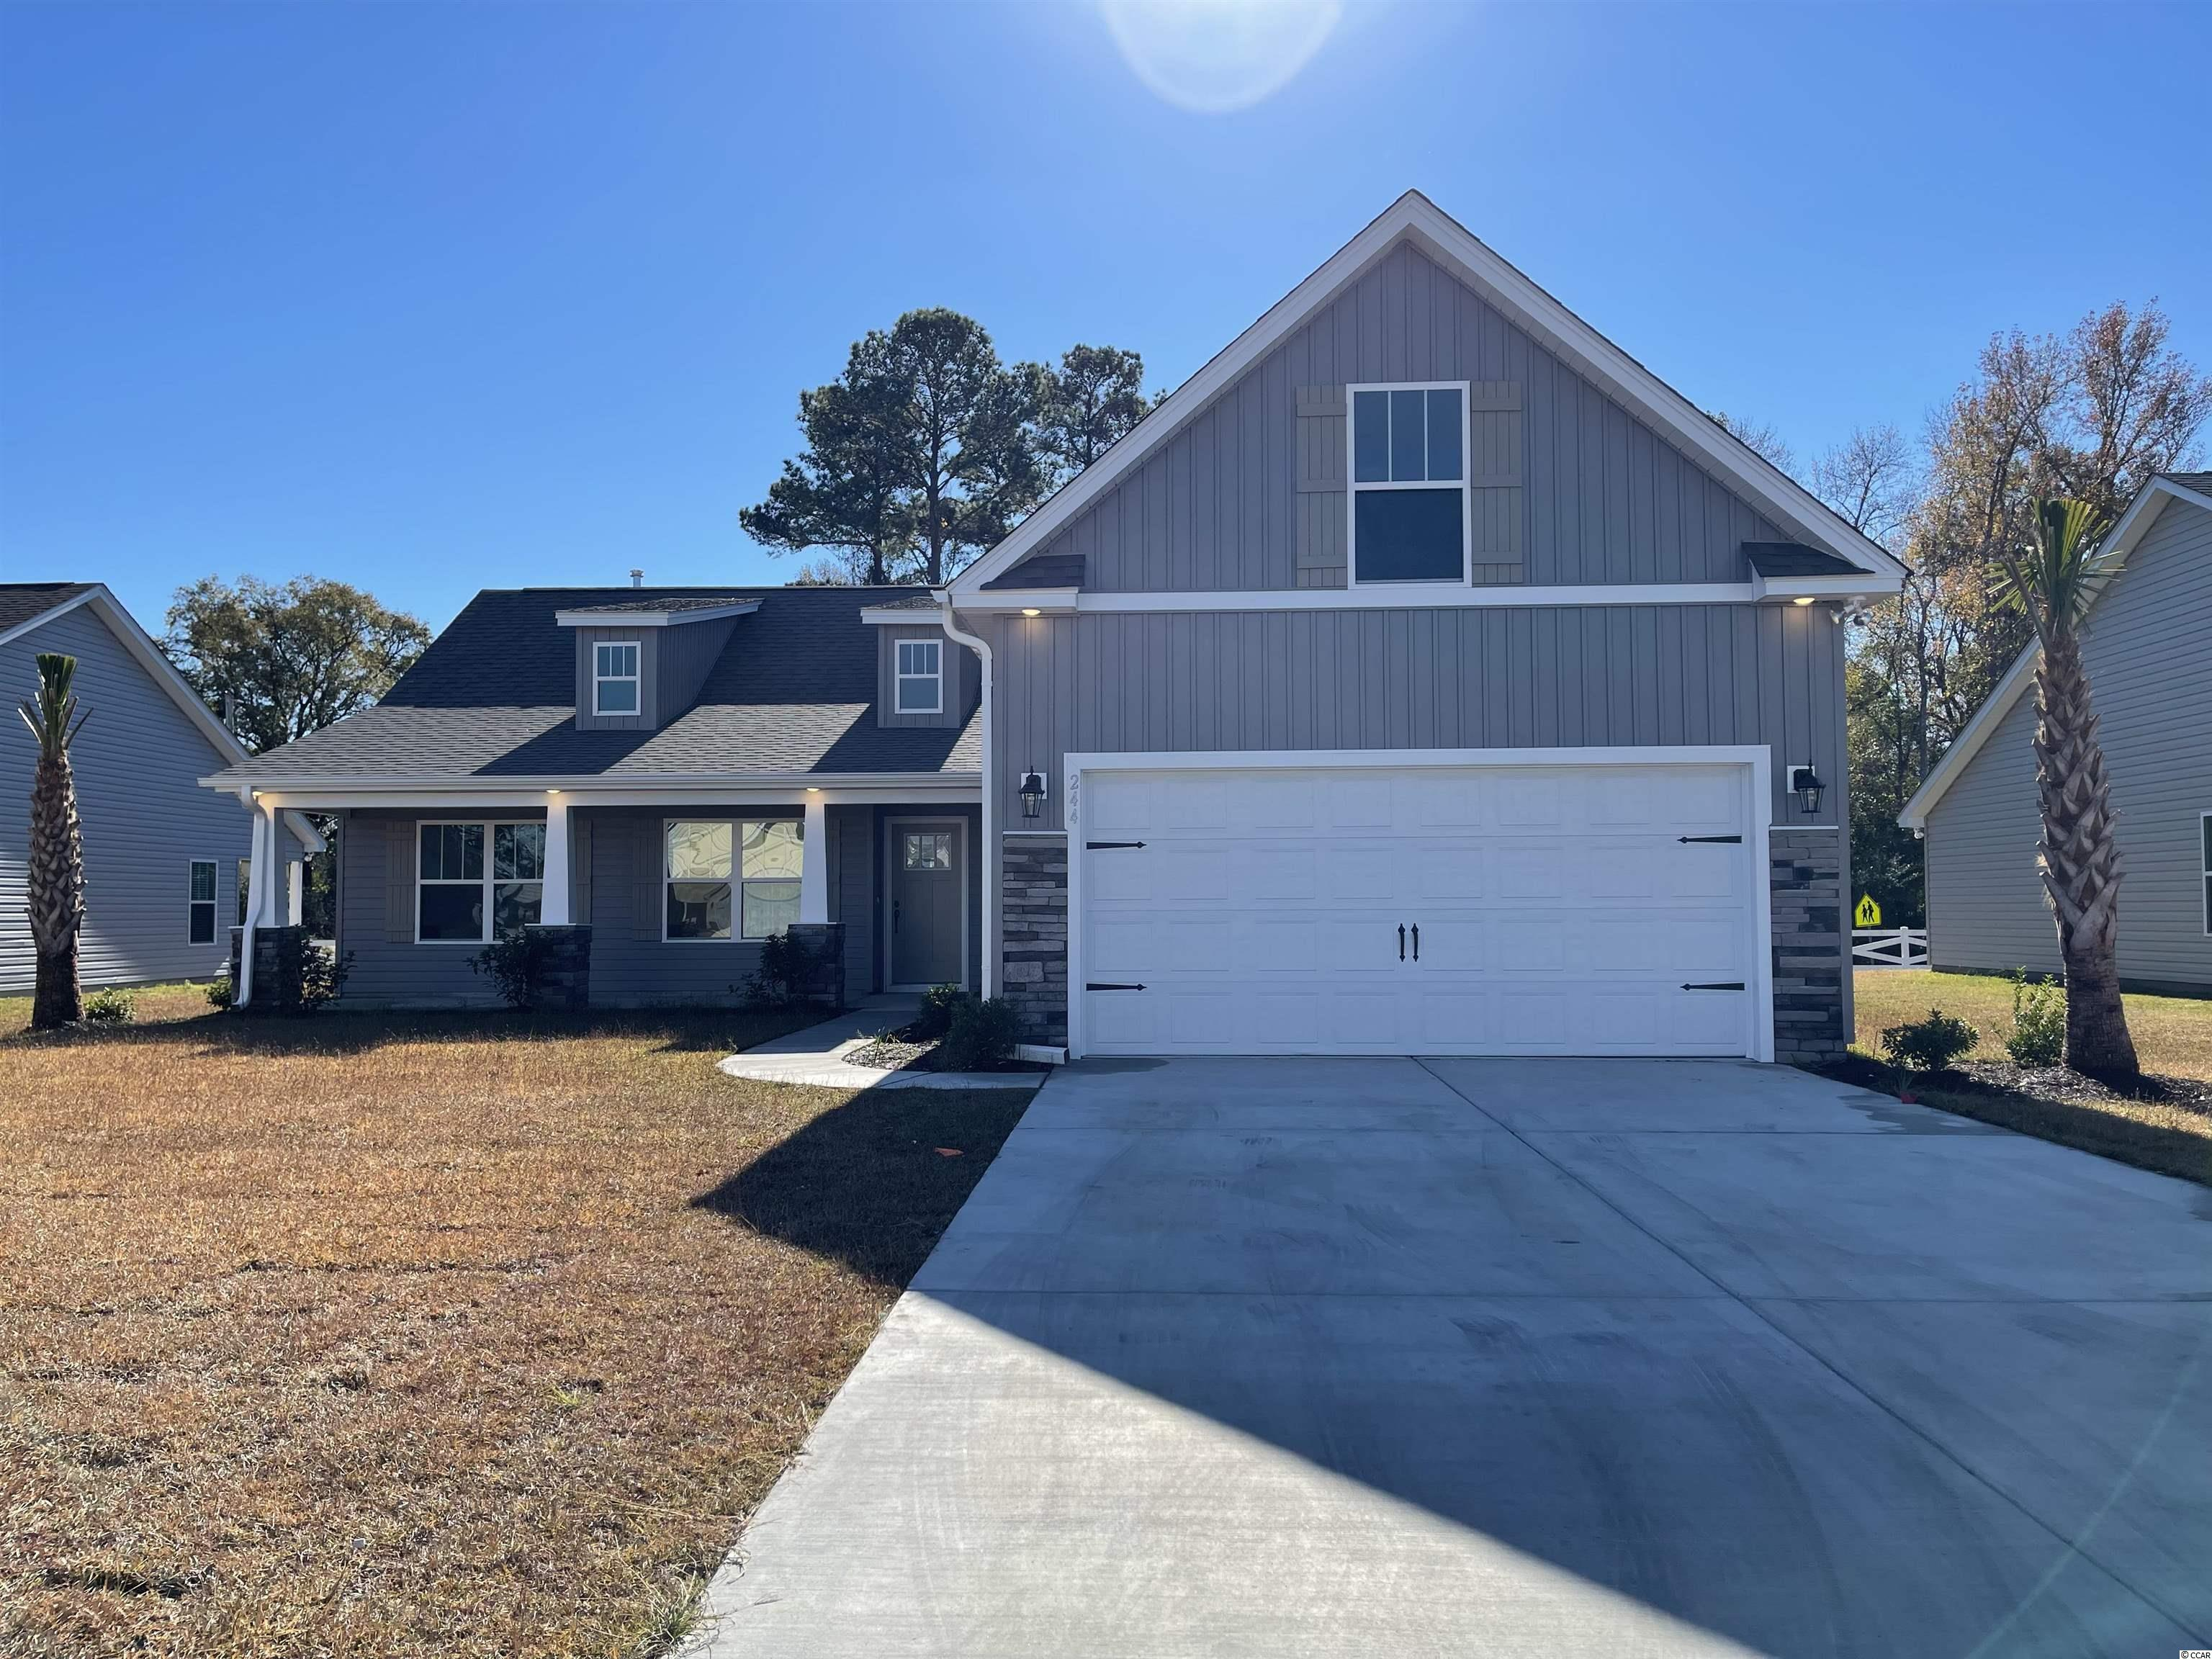 "Natural Gas quiet community located in Little River/North Myrtle Beach only a few miles from the Beach and major shopping! This is the Diamond floor plan featuring 4 bedrooms, 3 baths. This home includes finished 2 car garage, and a covered rear patio!! open concept floor plan, granite kitchen countertops, crown molding on kitchen cabinets with hardware included. 5ft cultured marble shower and a soaking tub in Master bathroom, walk in master closet. Ceramic tile in all bathrooms and Laundry room, LVP flooring in Family Room, Foyer, Hall. Vaulted ceiling in Family room and Master bedroom. Wainscot and 5 1/2 "" beaded baseboards for Custom look!! Home also includes TAEXX pest control tubing, lawn irrigation and Ring video doorbell!!!Stone accents on the exterior as well. All measurements are approximate *Photos of a similar home* Some items on the photos may be an additional cost. Anticipating completion in June 2021."